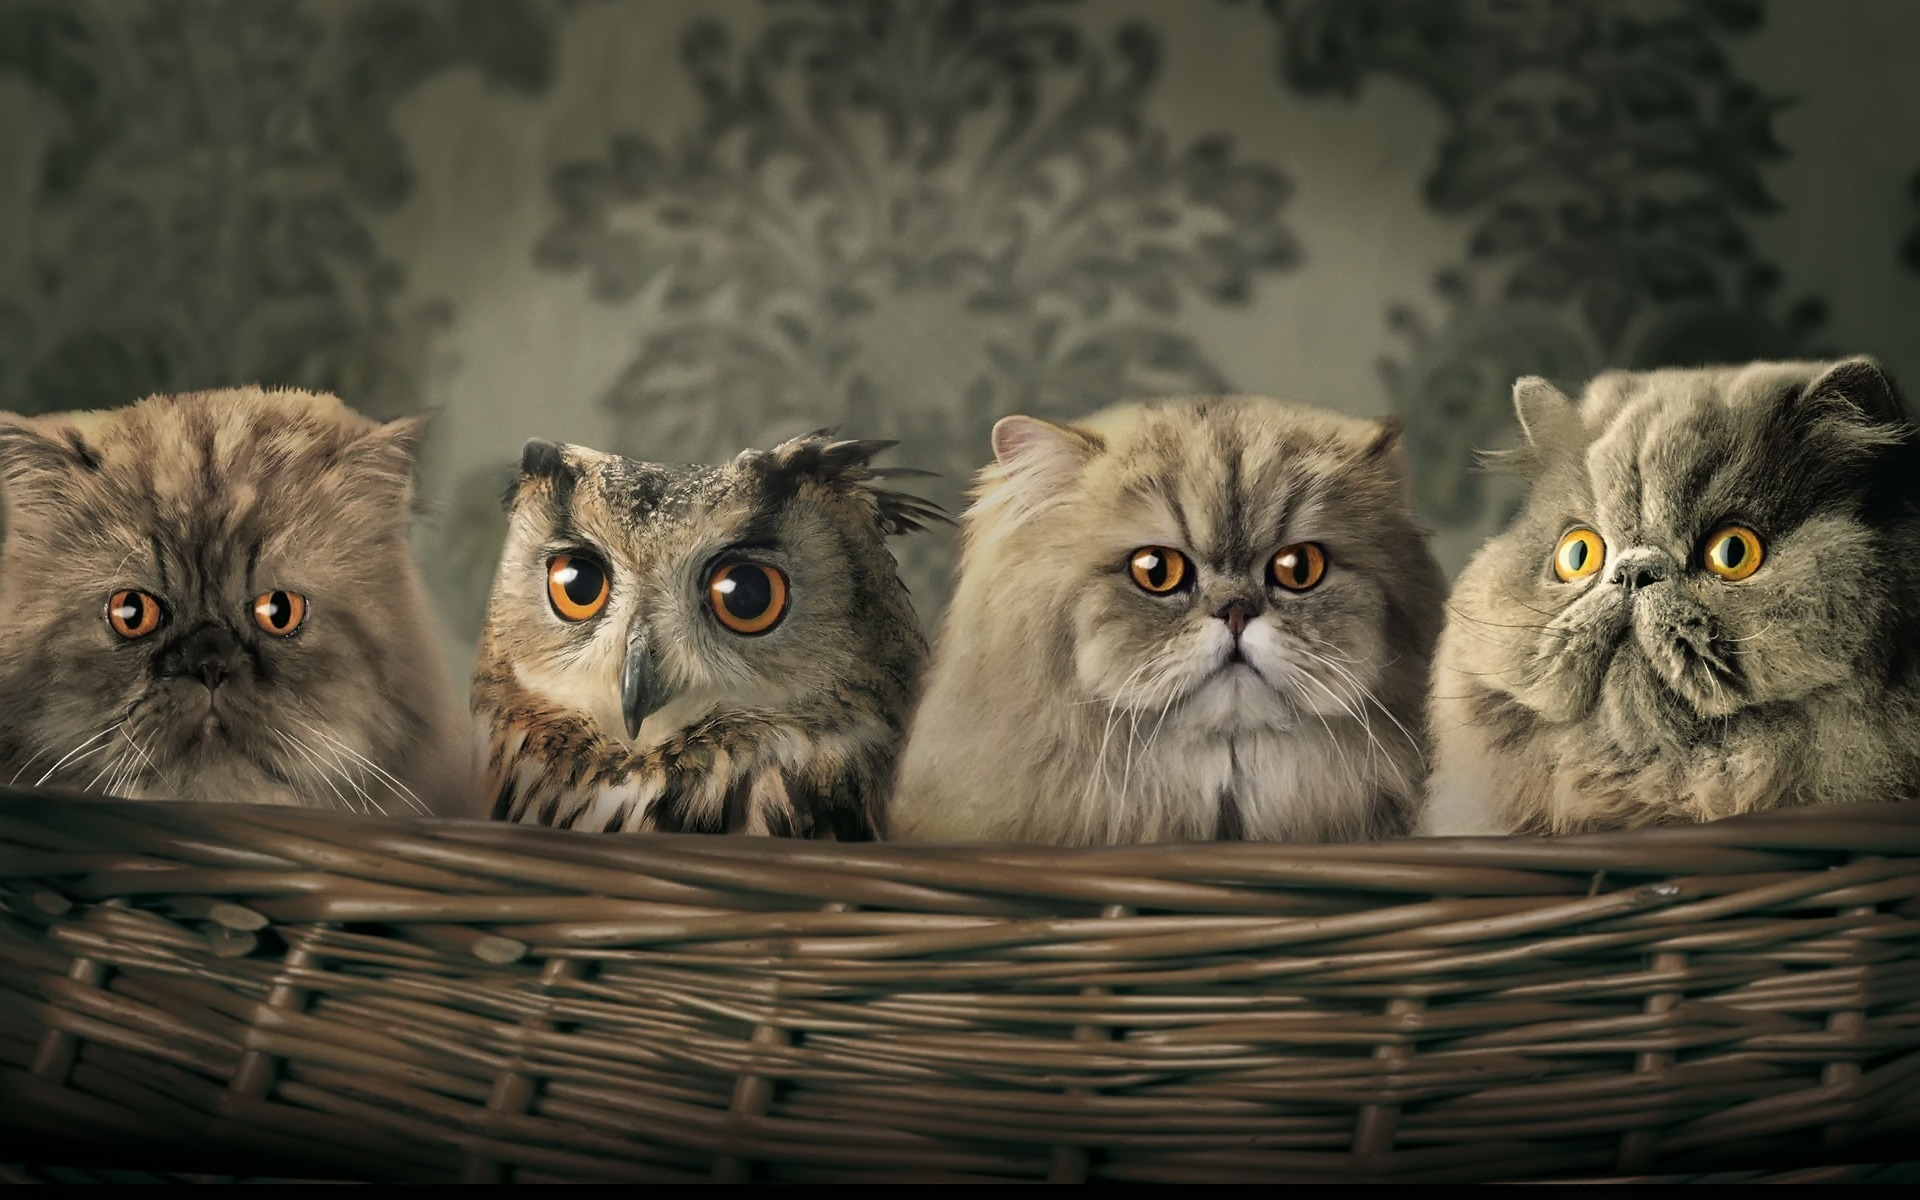 cats Owls camouflage HD Wallpaper